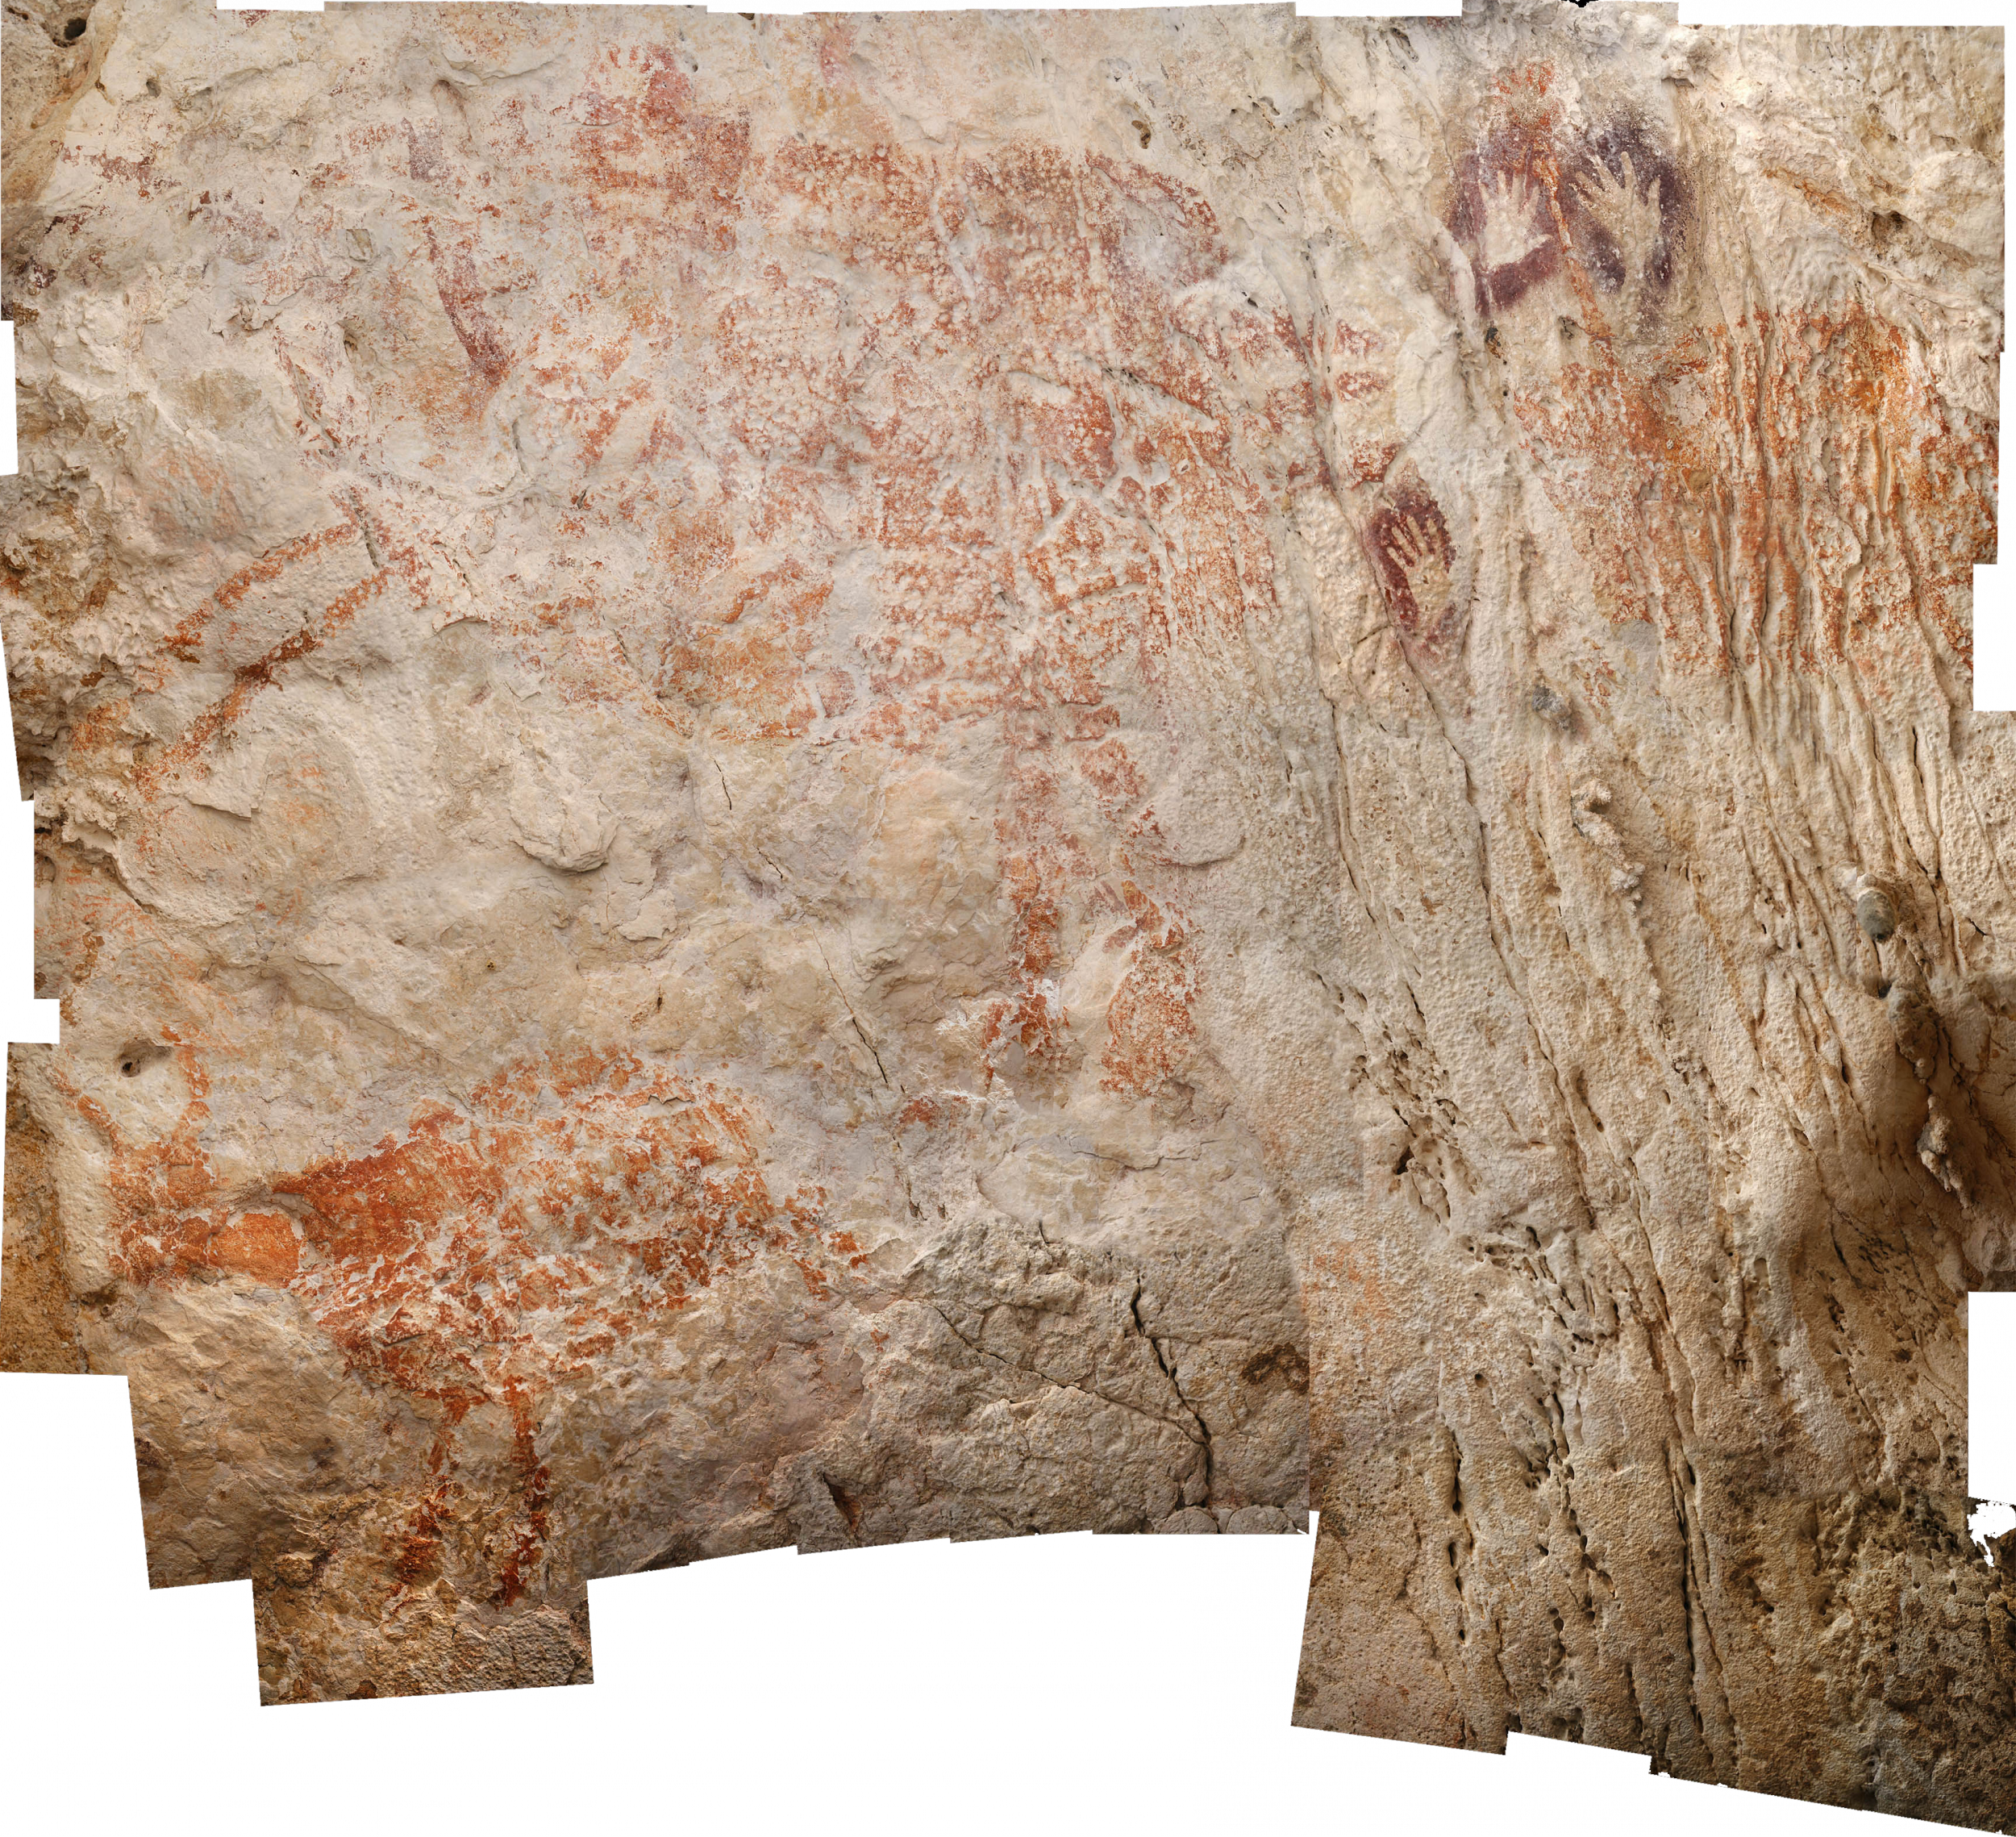 Banteng-40000-years-old-dated-panel-